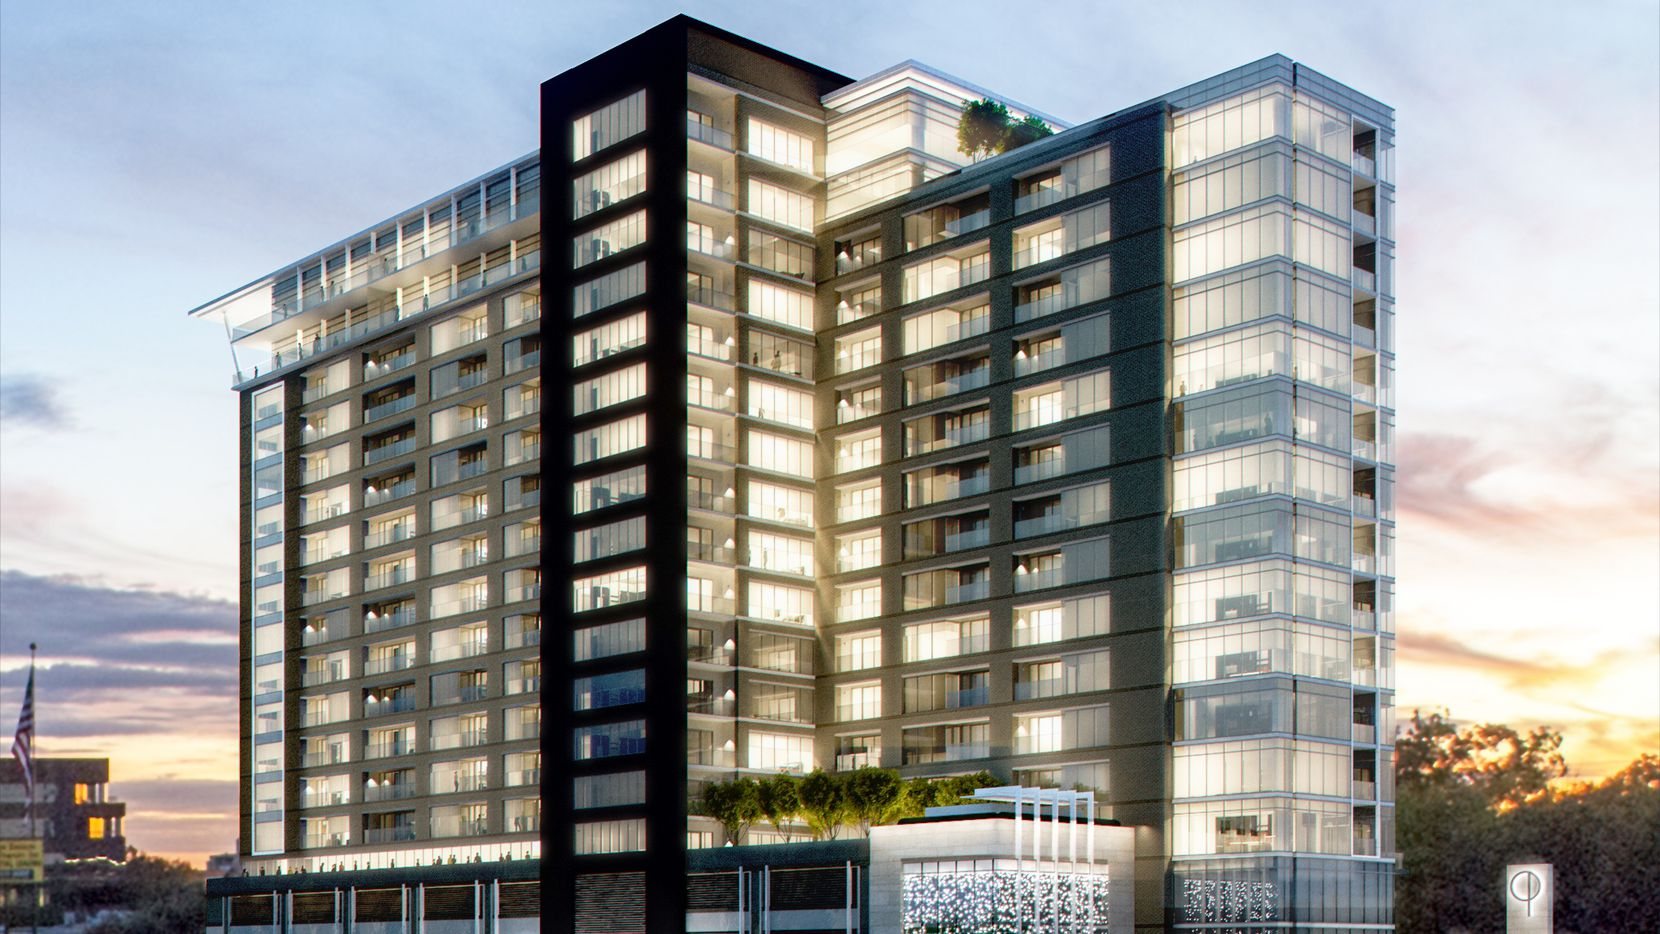 Southern Land's building on North Central Expressway near Knox Street will have more than 300 units.